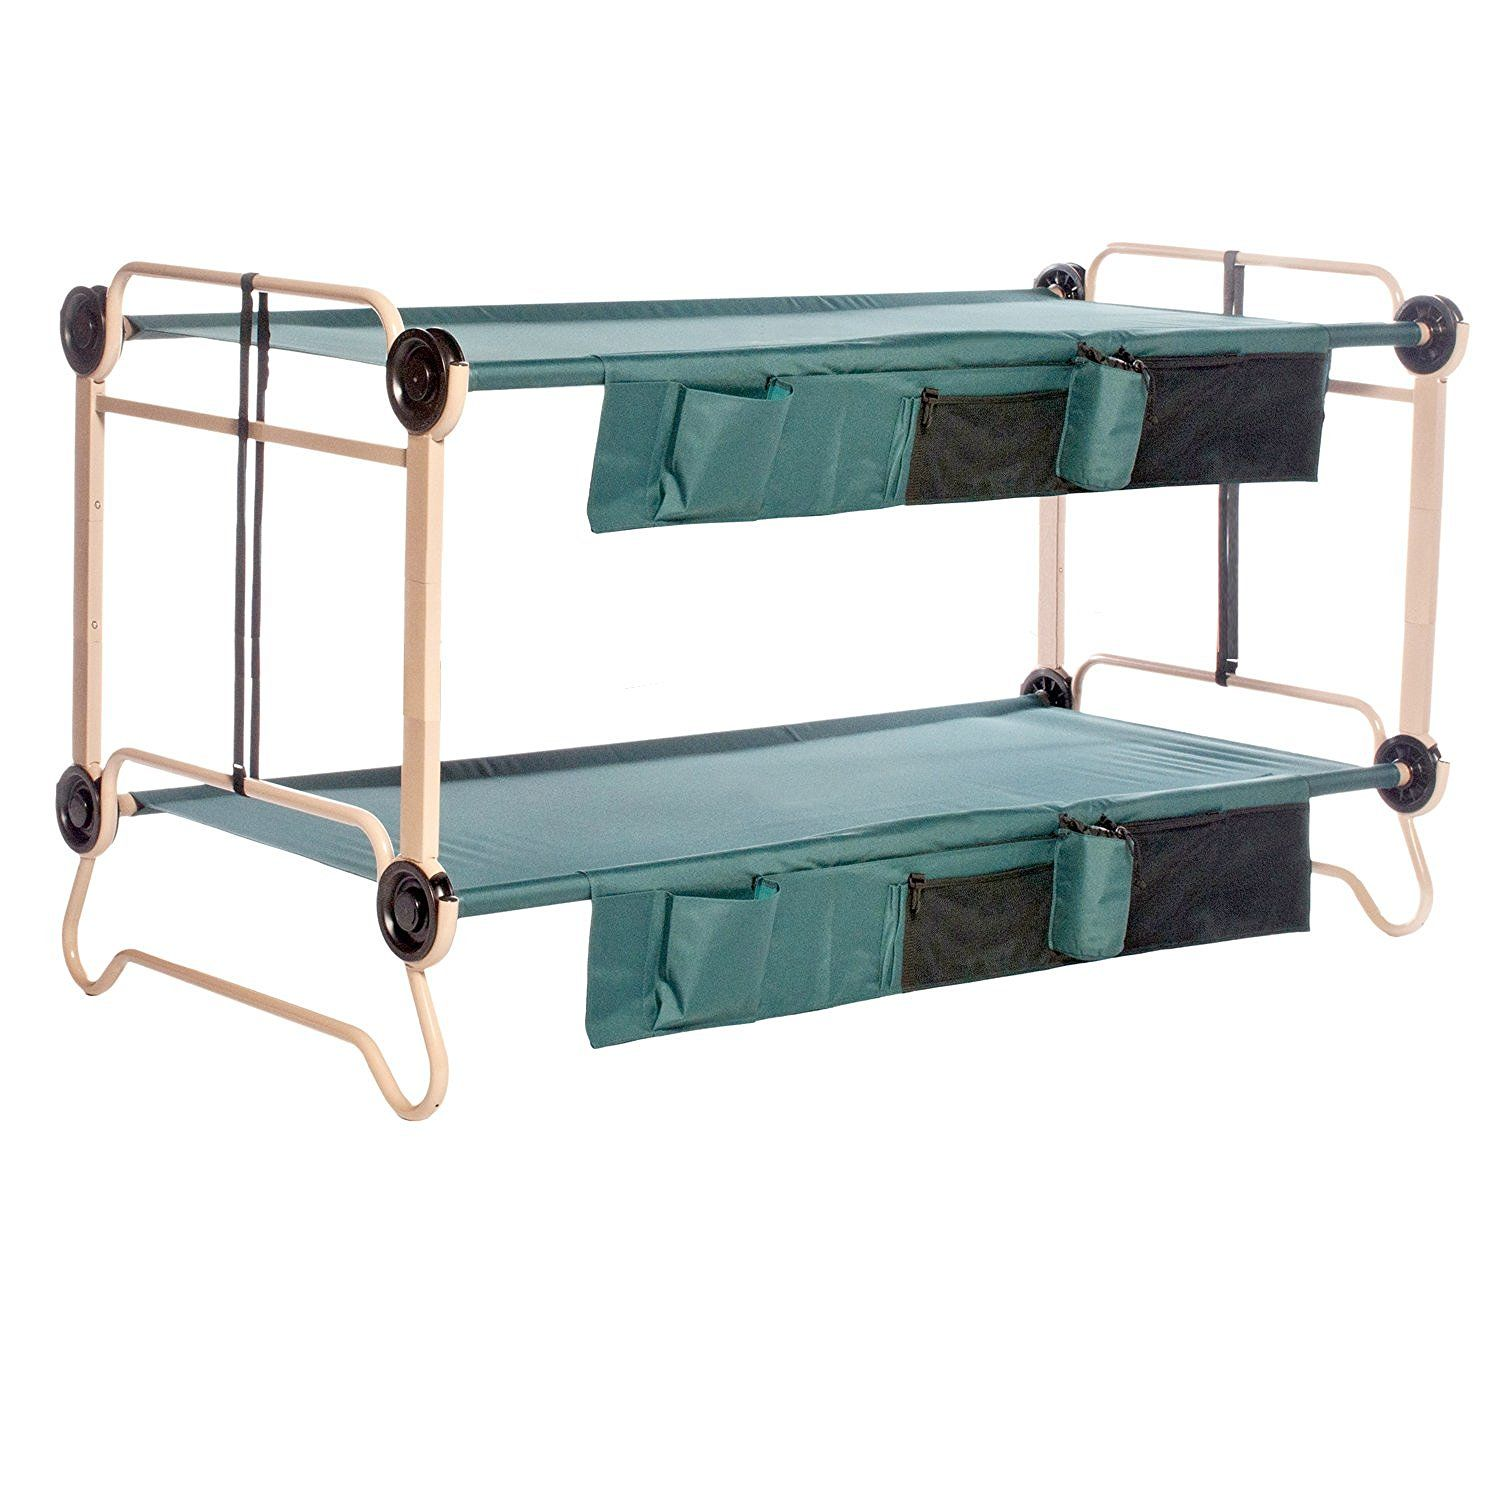 """Camping comfort """"DiscOBed CamOBunk with 2 Organizers"""